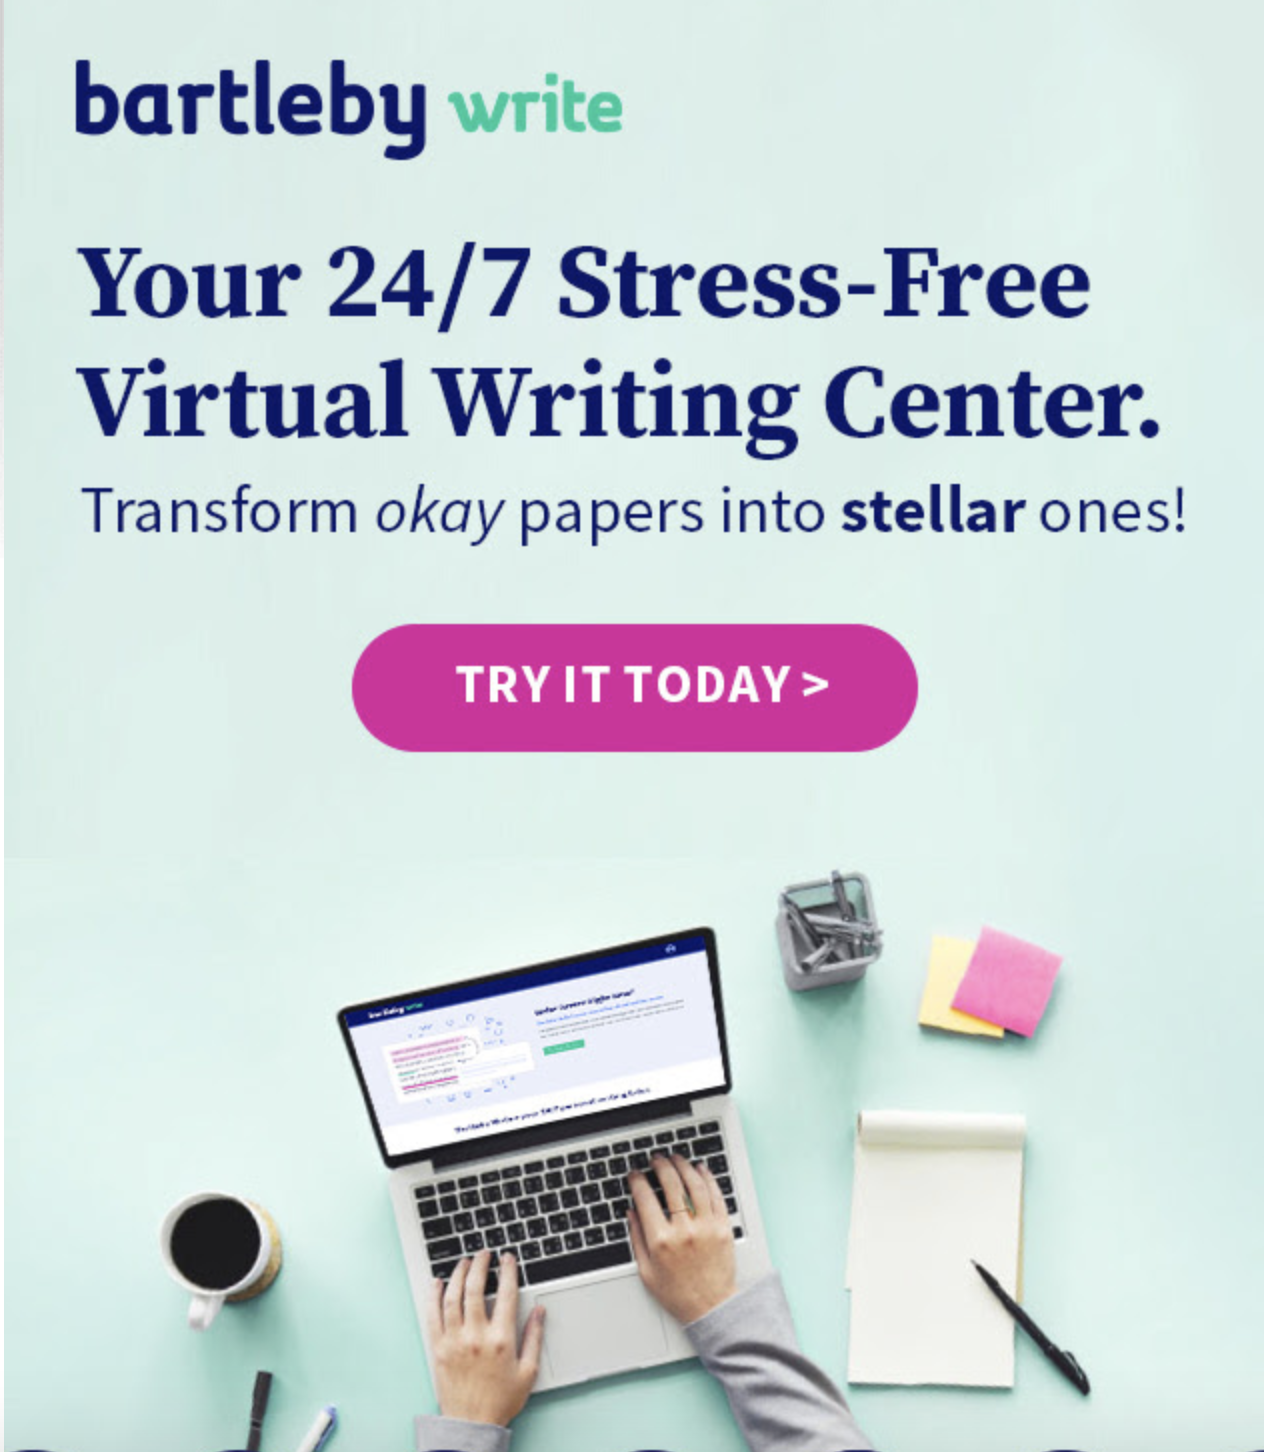 A screenshot of the promotional material sent to the whole campus advertising the Bartleby Virtual Writing Center.